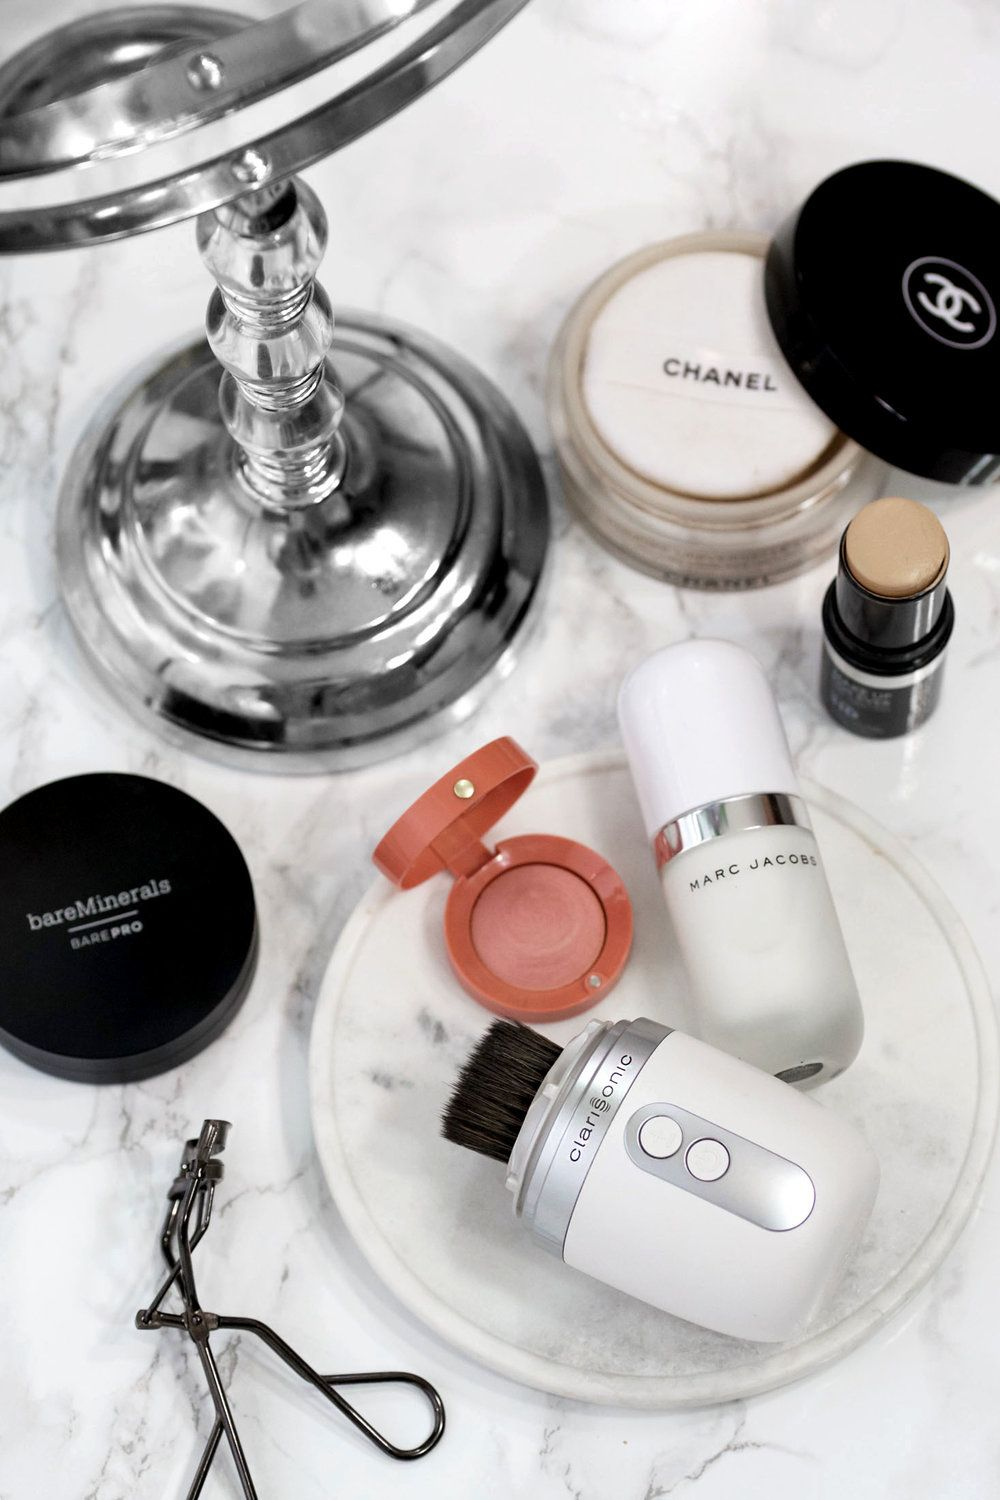 Testing out Clarisonic's new foundation brush Foundation